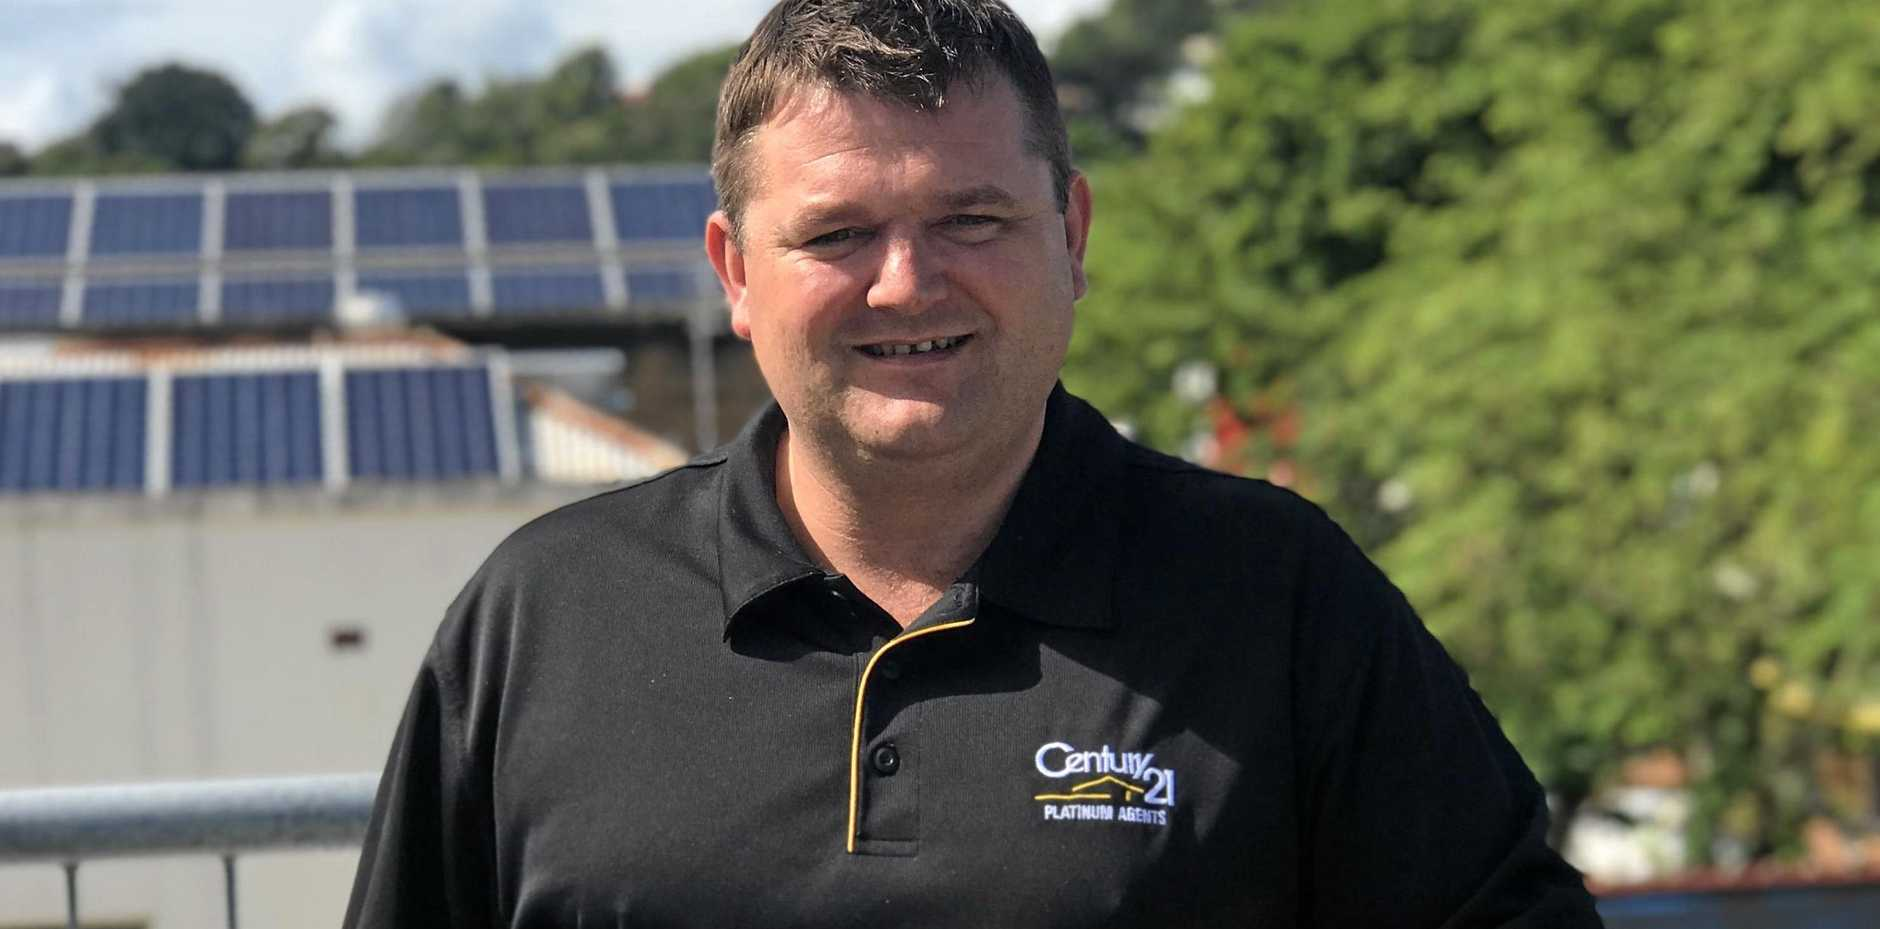 BETTER YET: Century 21 Gympie principal Billy Mitchell says the town's rental market is the best it has ever been.